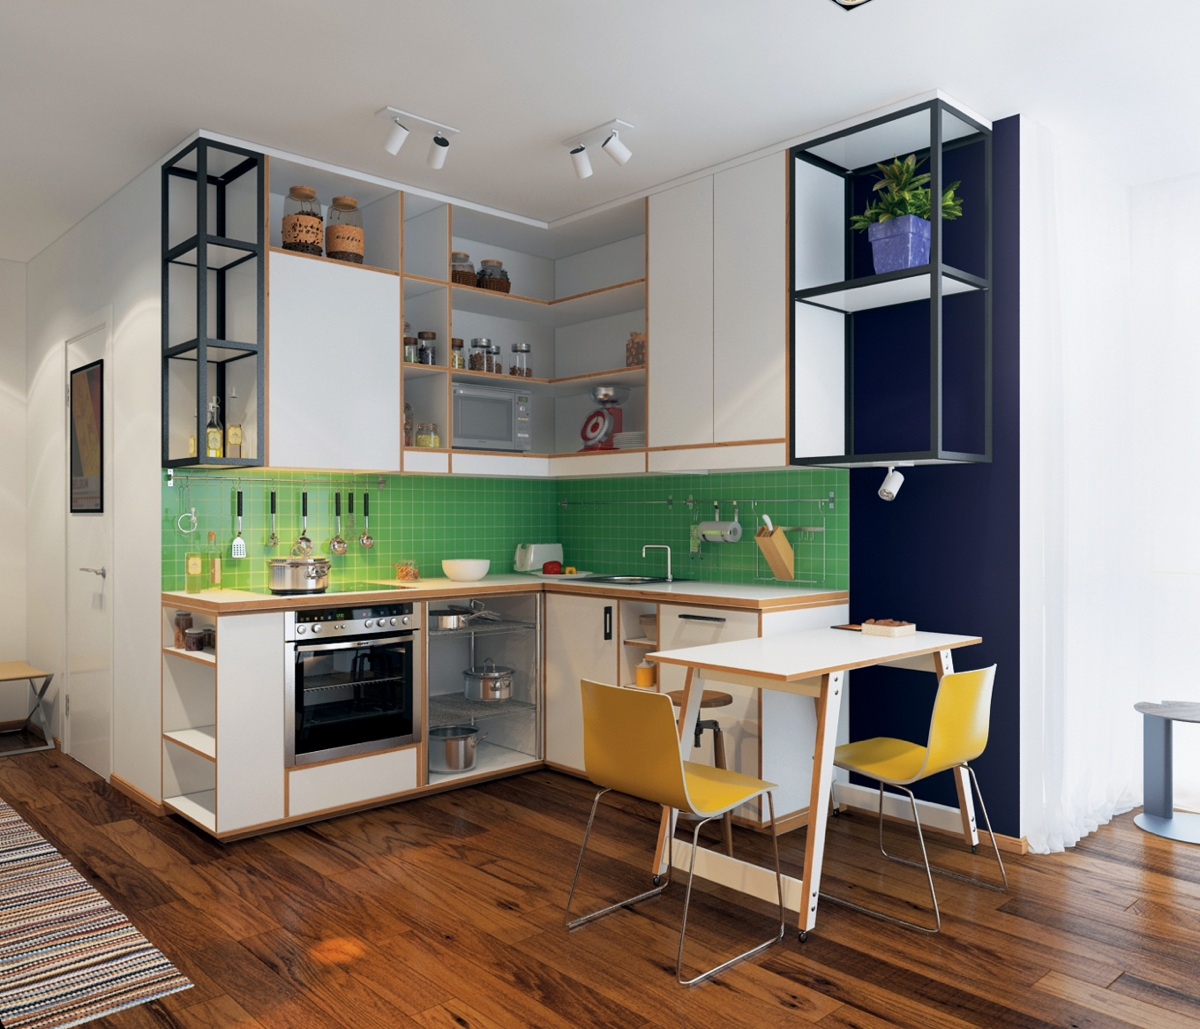 400 Sq Ft homes under 400 square feet: 5 apartments that squeeze utility out